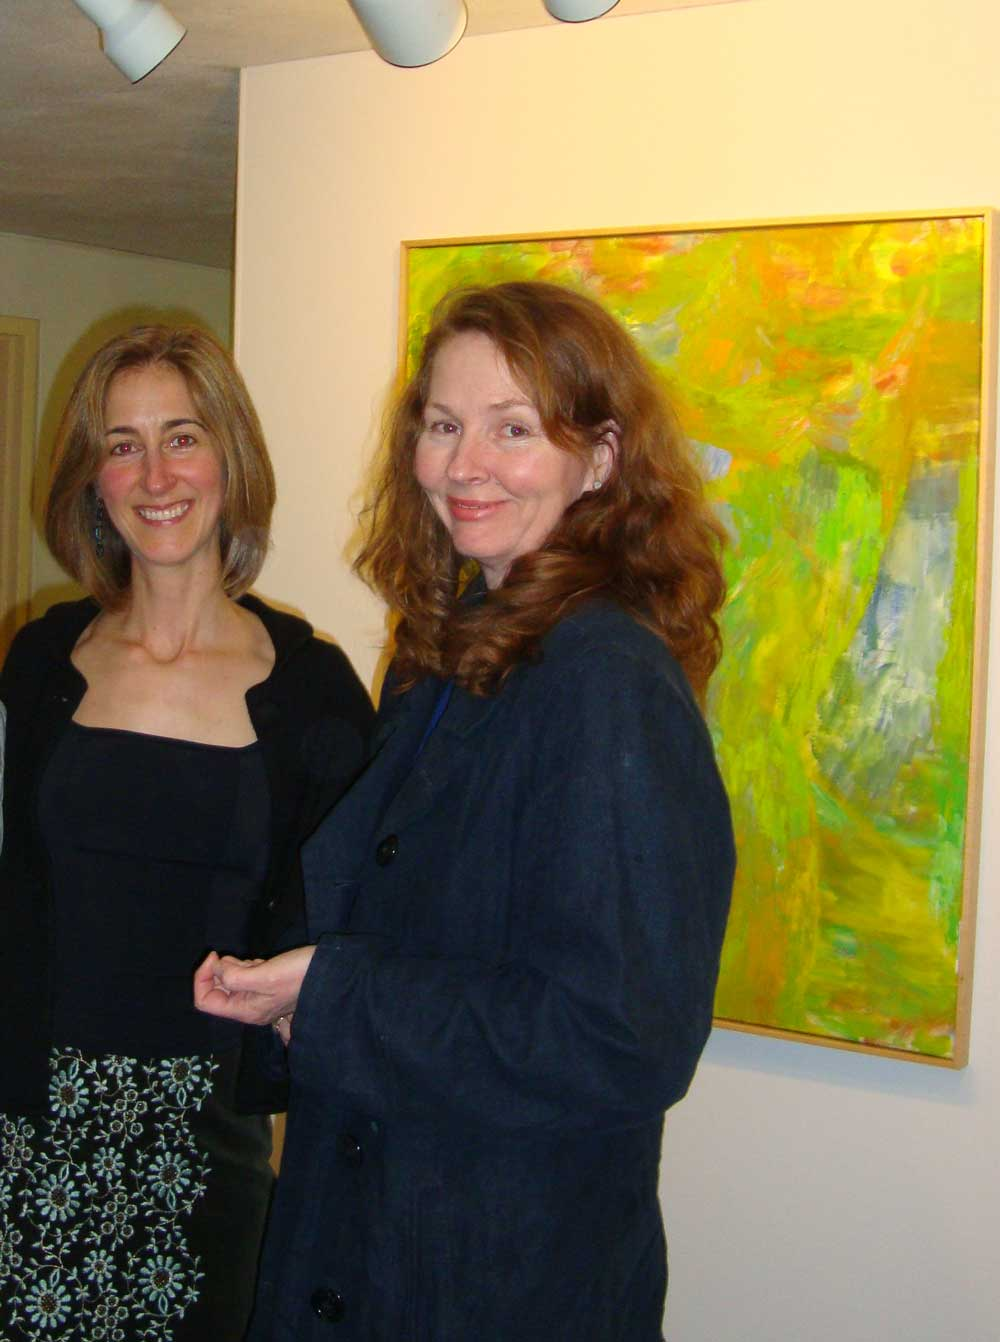 Christine-Casarsa-Bardshow-2011-The-Figure-Reconsidered-Carrie-Owens